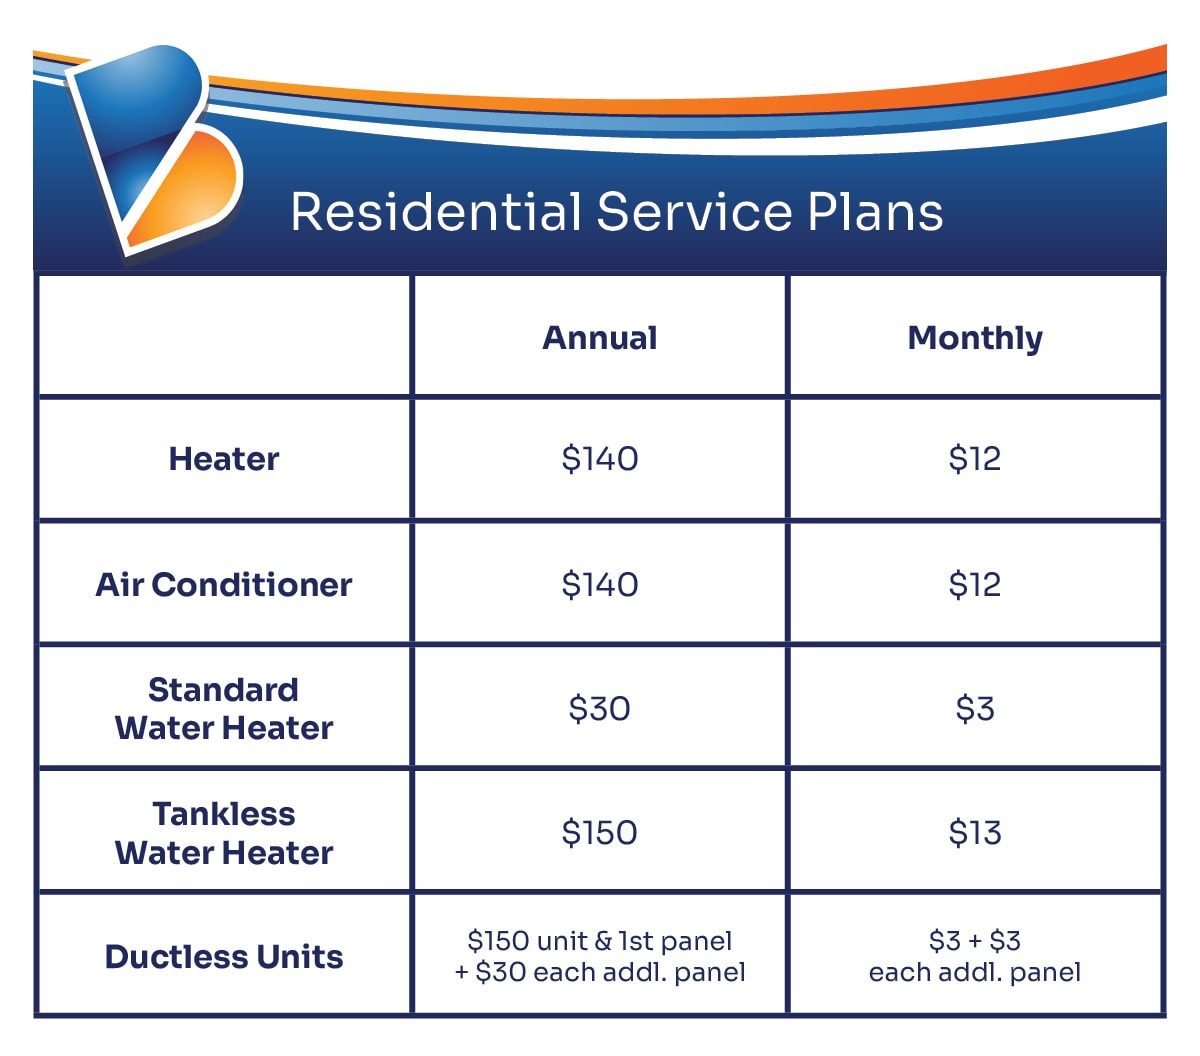 Residential Maintenance Plan prices